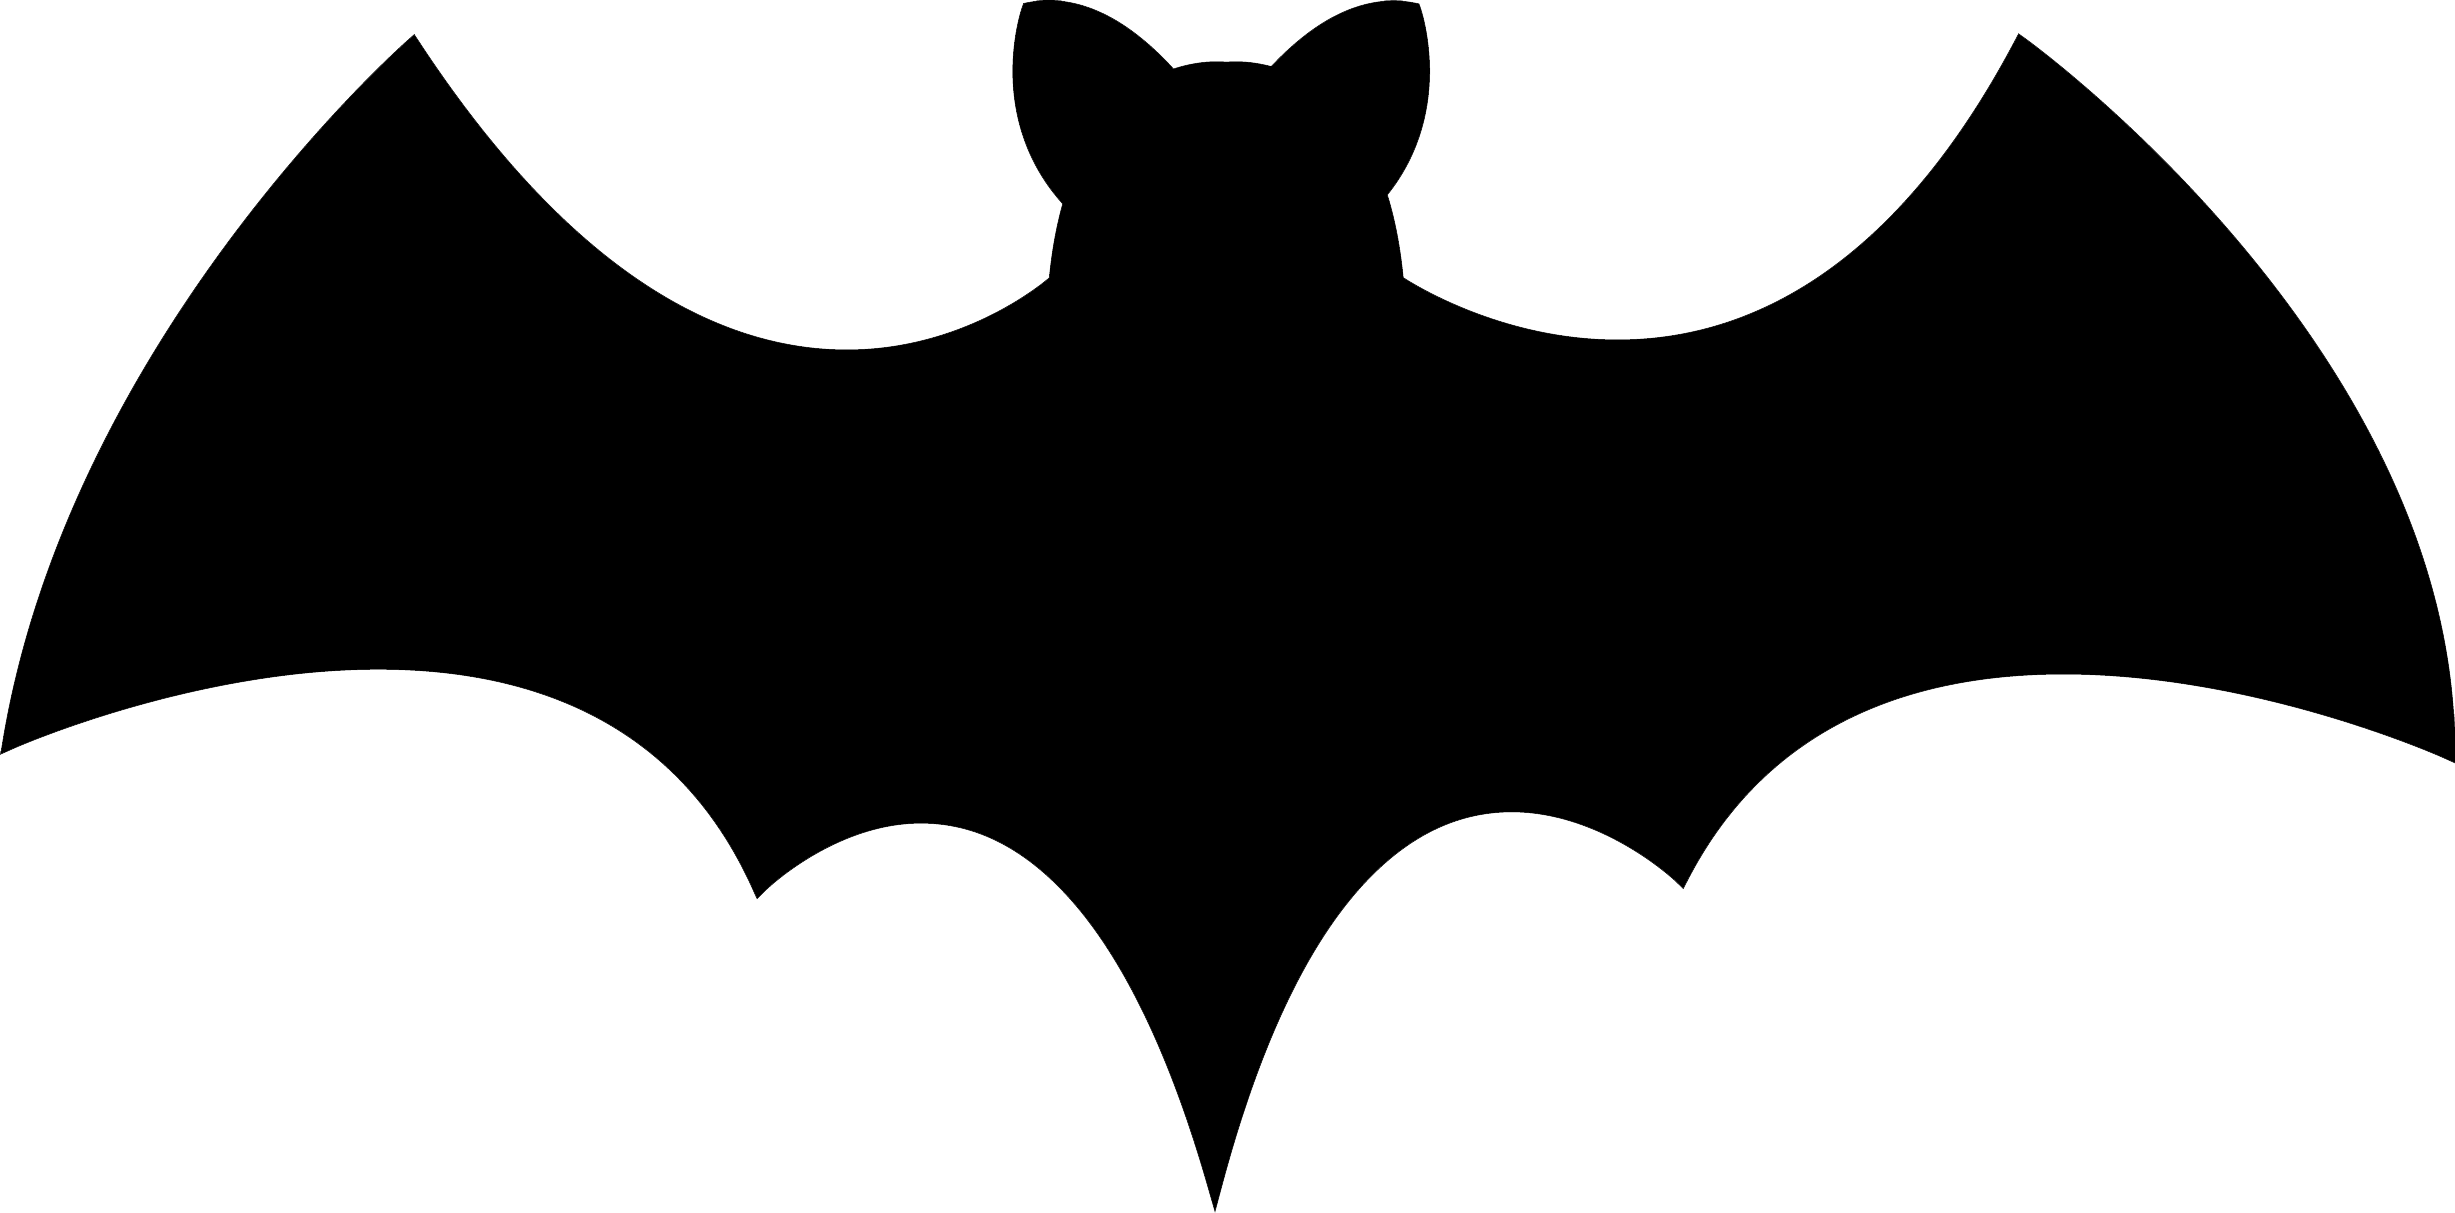 Bat Halloween Silhouette Clip Art